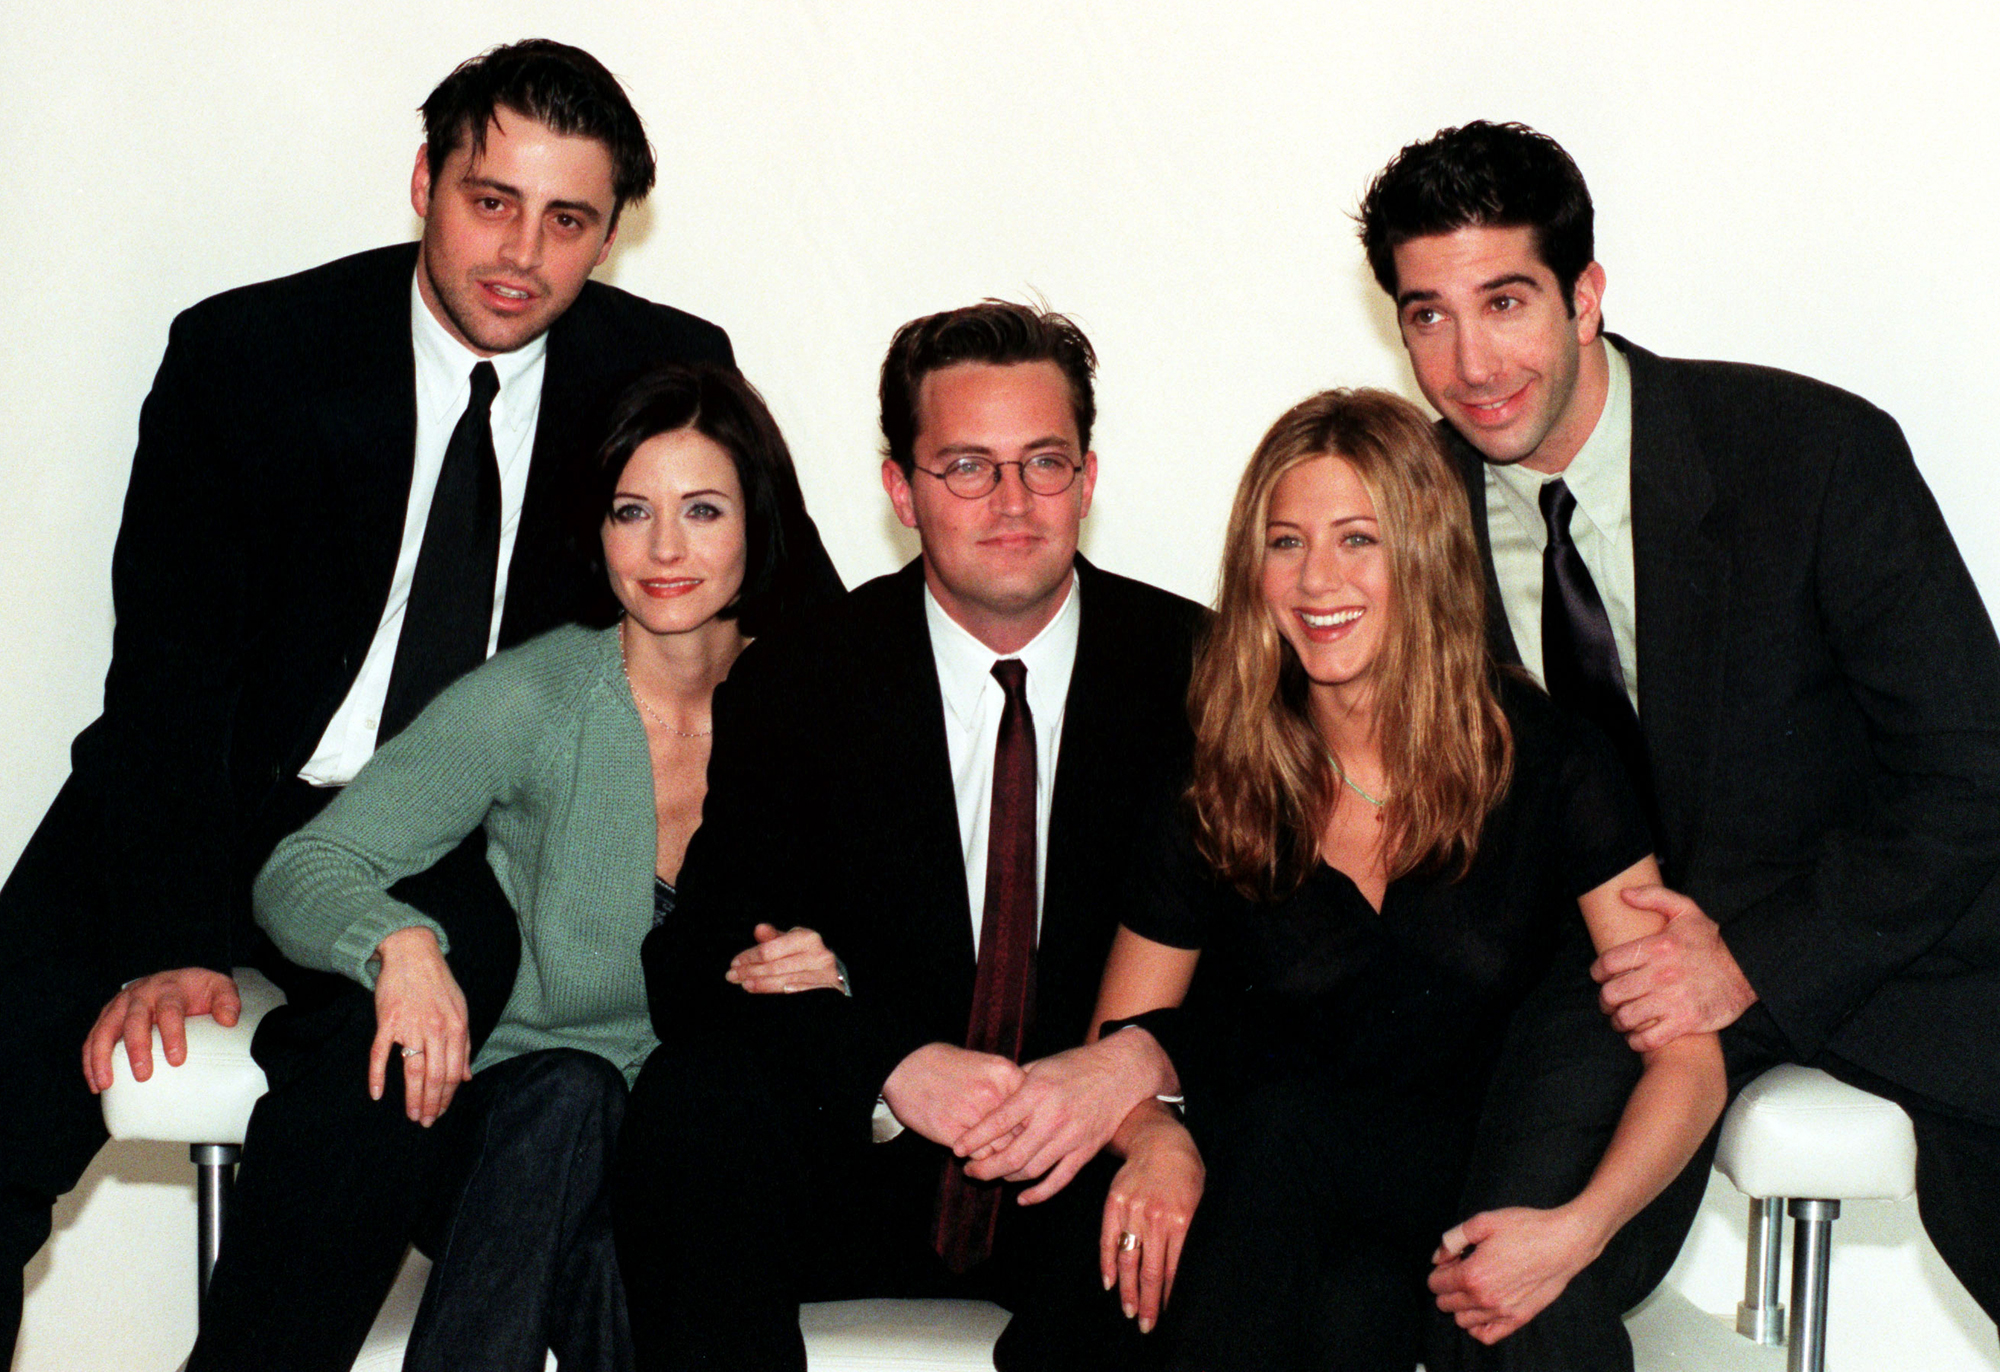 A 'Friends' Pop-Up Is Coming to NYC, Complete With Central